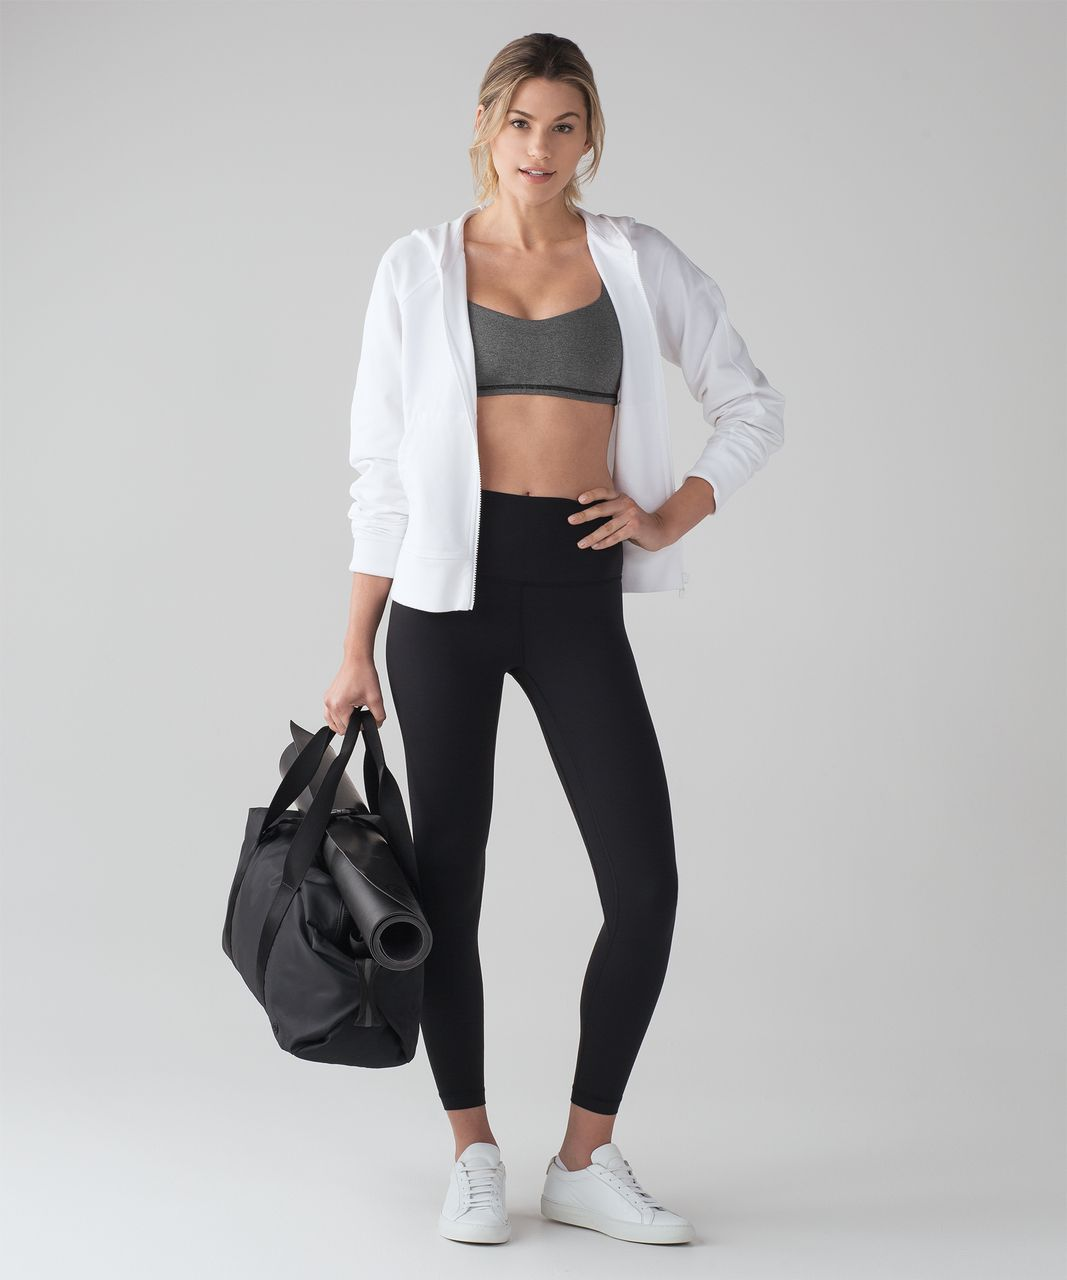 Lululemon Free To Be Bra - Heathered Black / Black